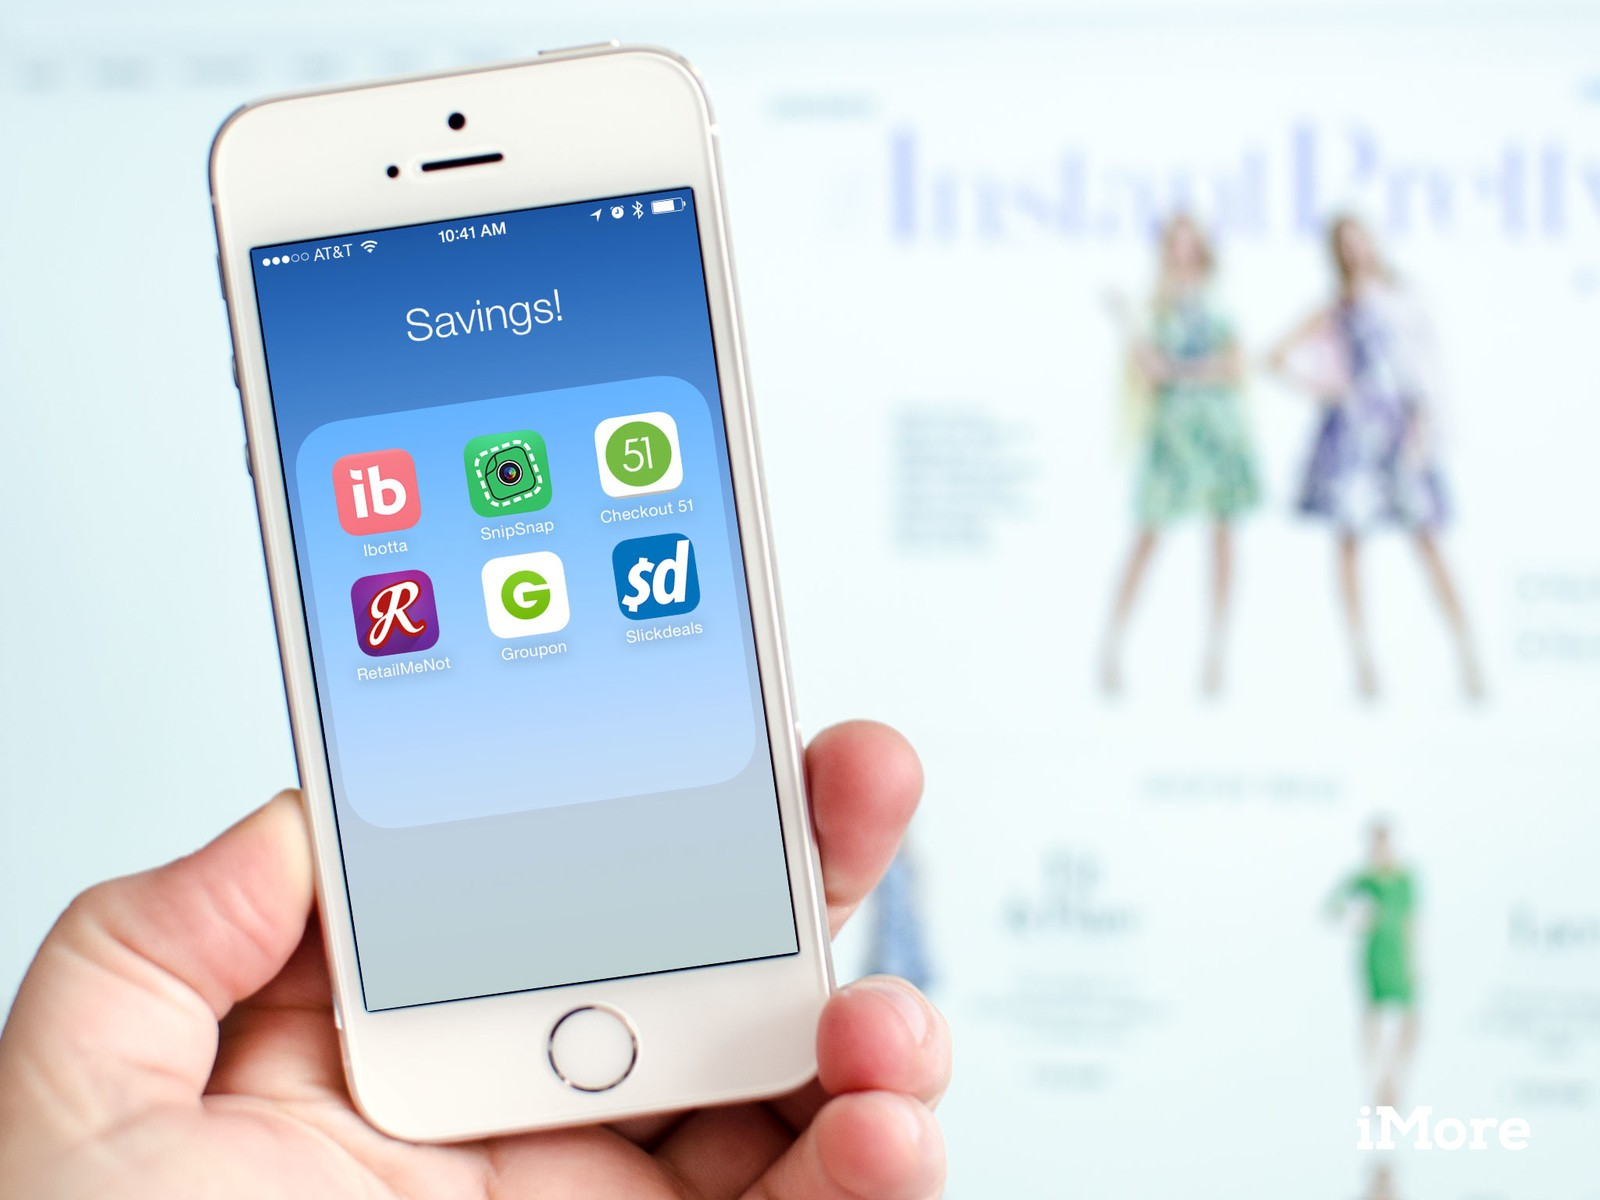 Best coupon and savings apps for iPhone: Ibotta, SnipSnap, Checkout 51, and more!